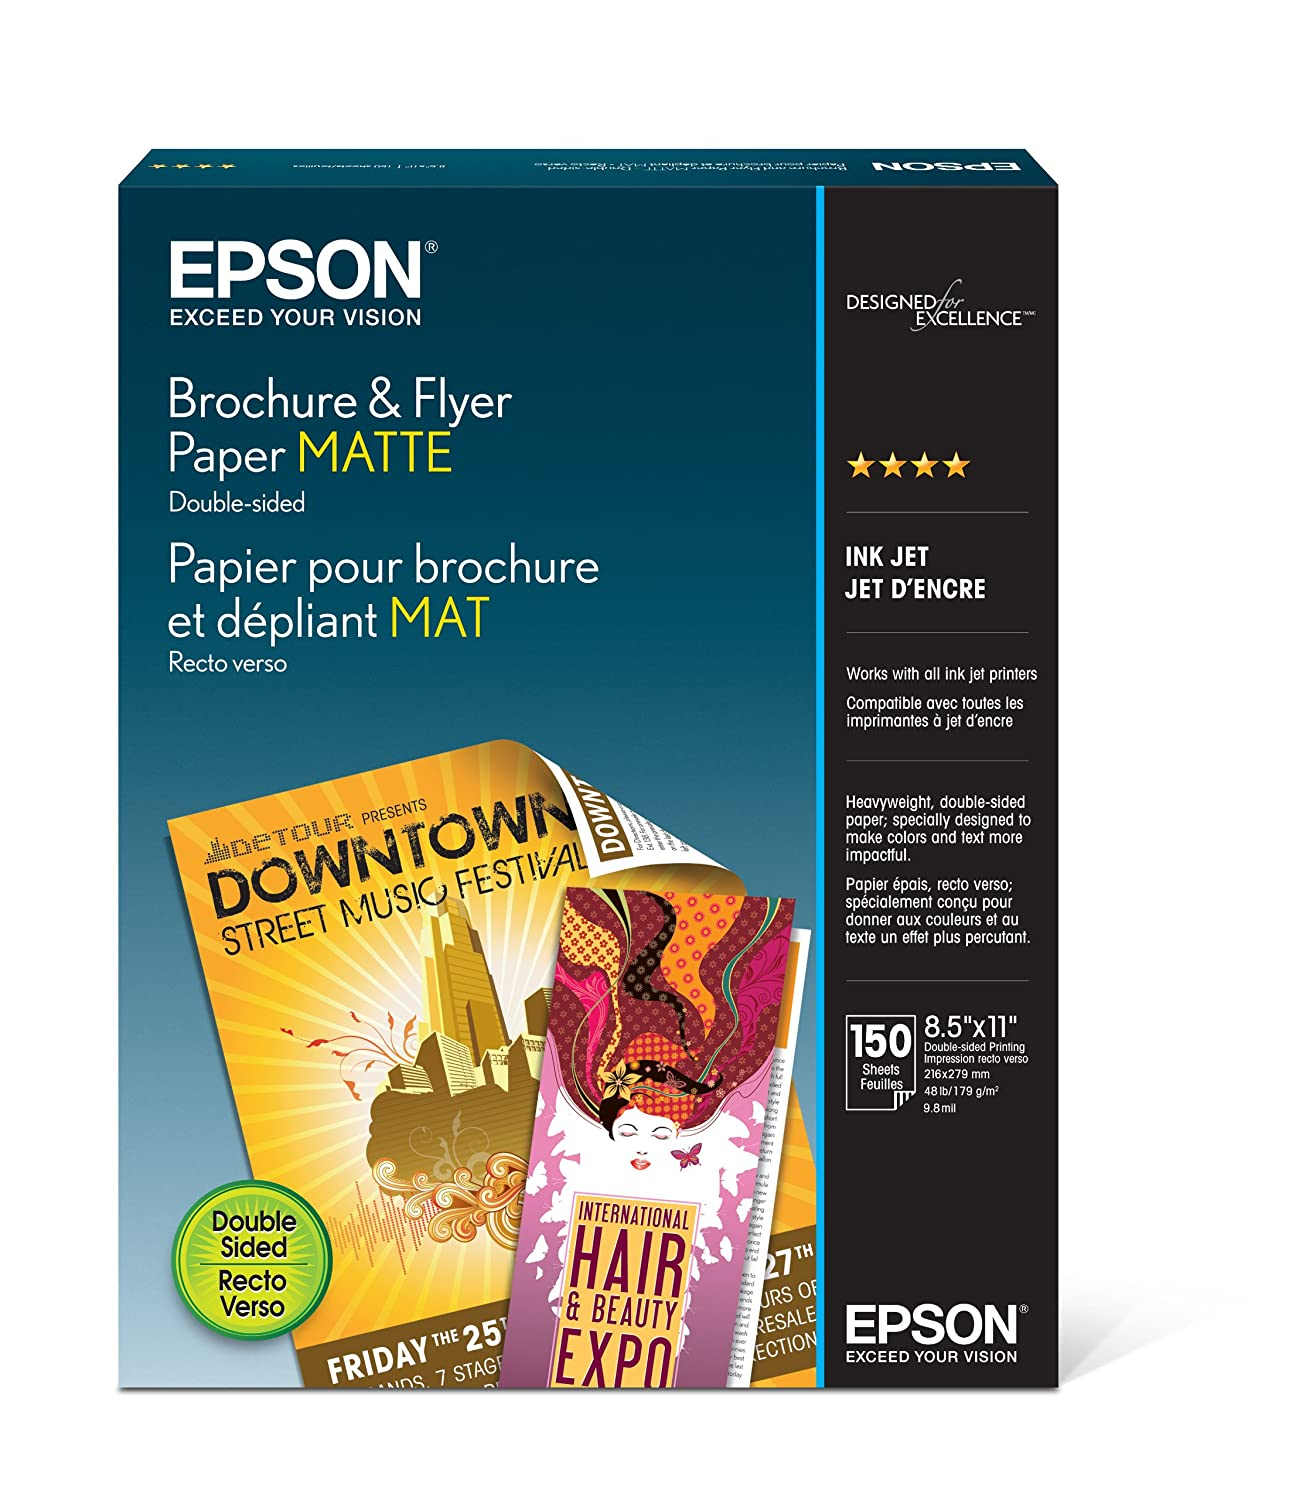 Epson S042384 Brochure and Flyer Paper Matte, Double-Sided (White)